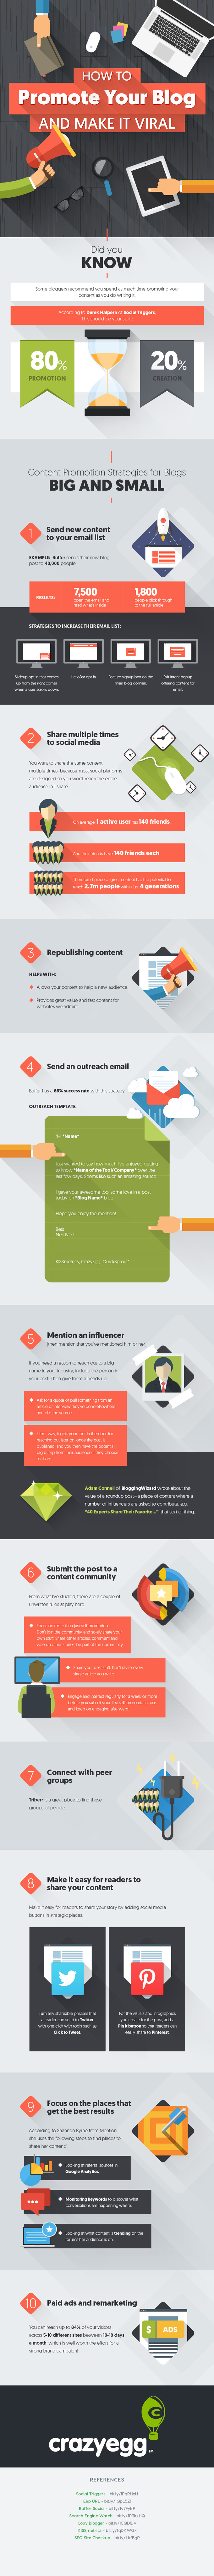 How to make your blog viral infographic by Crazyegg